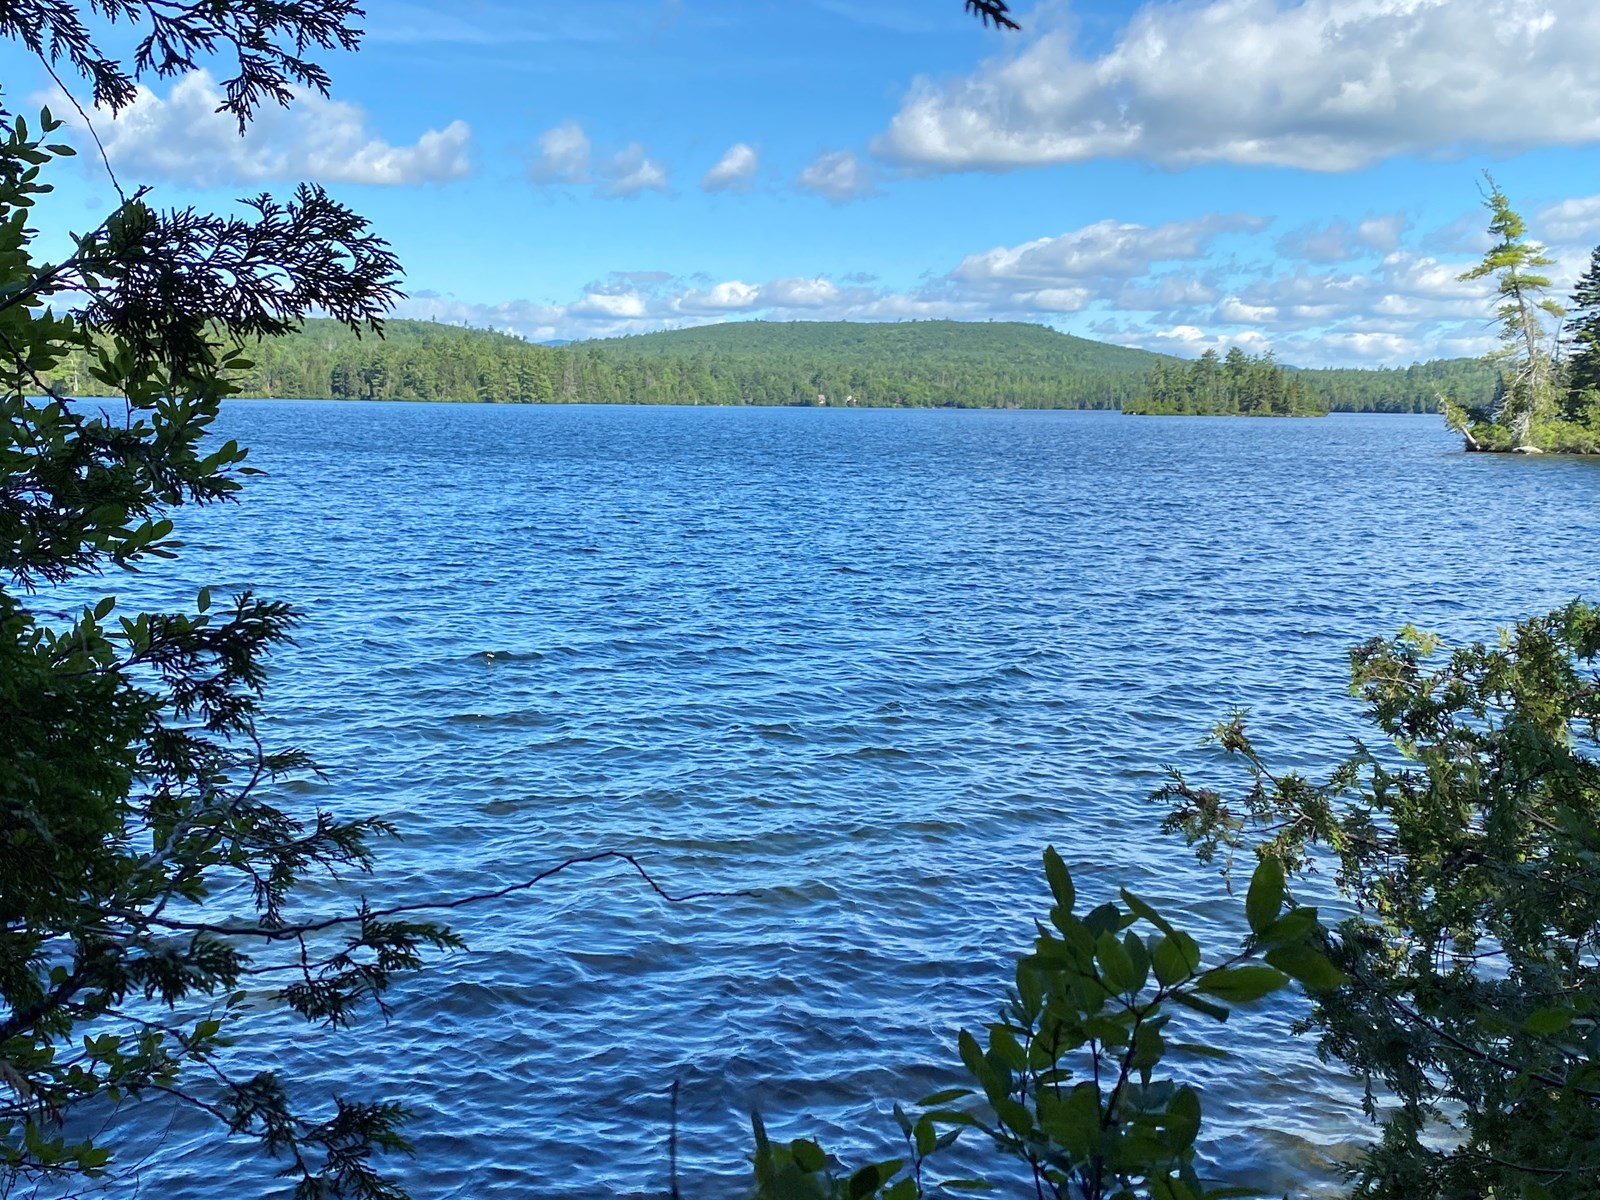 Land for Sale in Lakeview Plt, ME